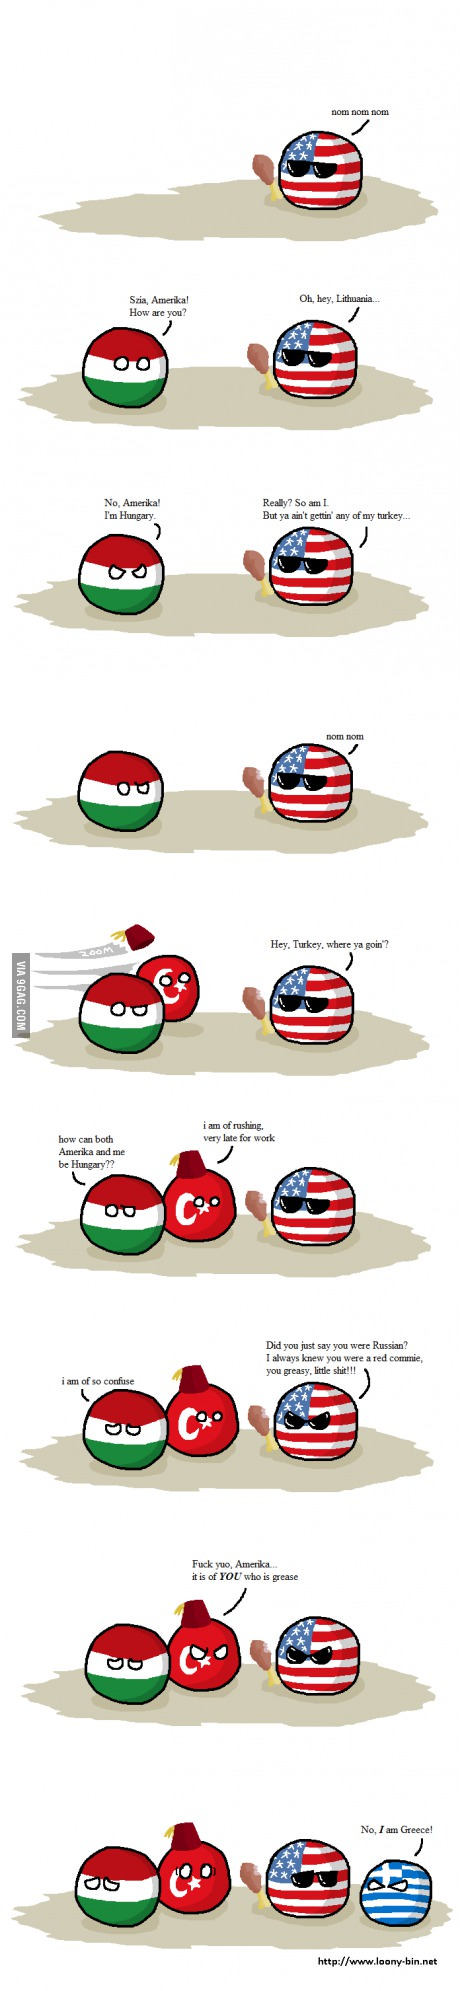 Country сonfusion, SO DAM FUNNY THO!